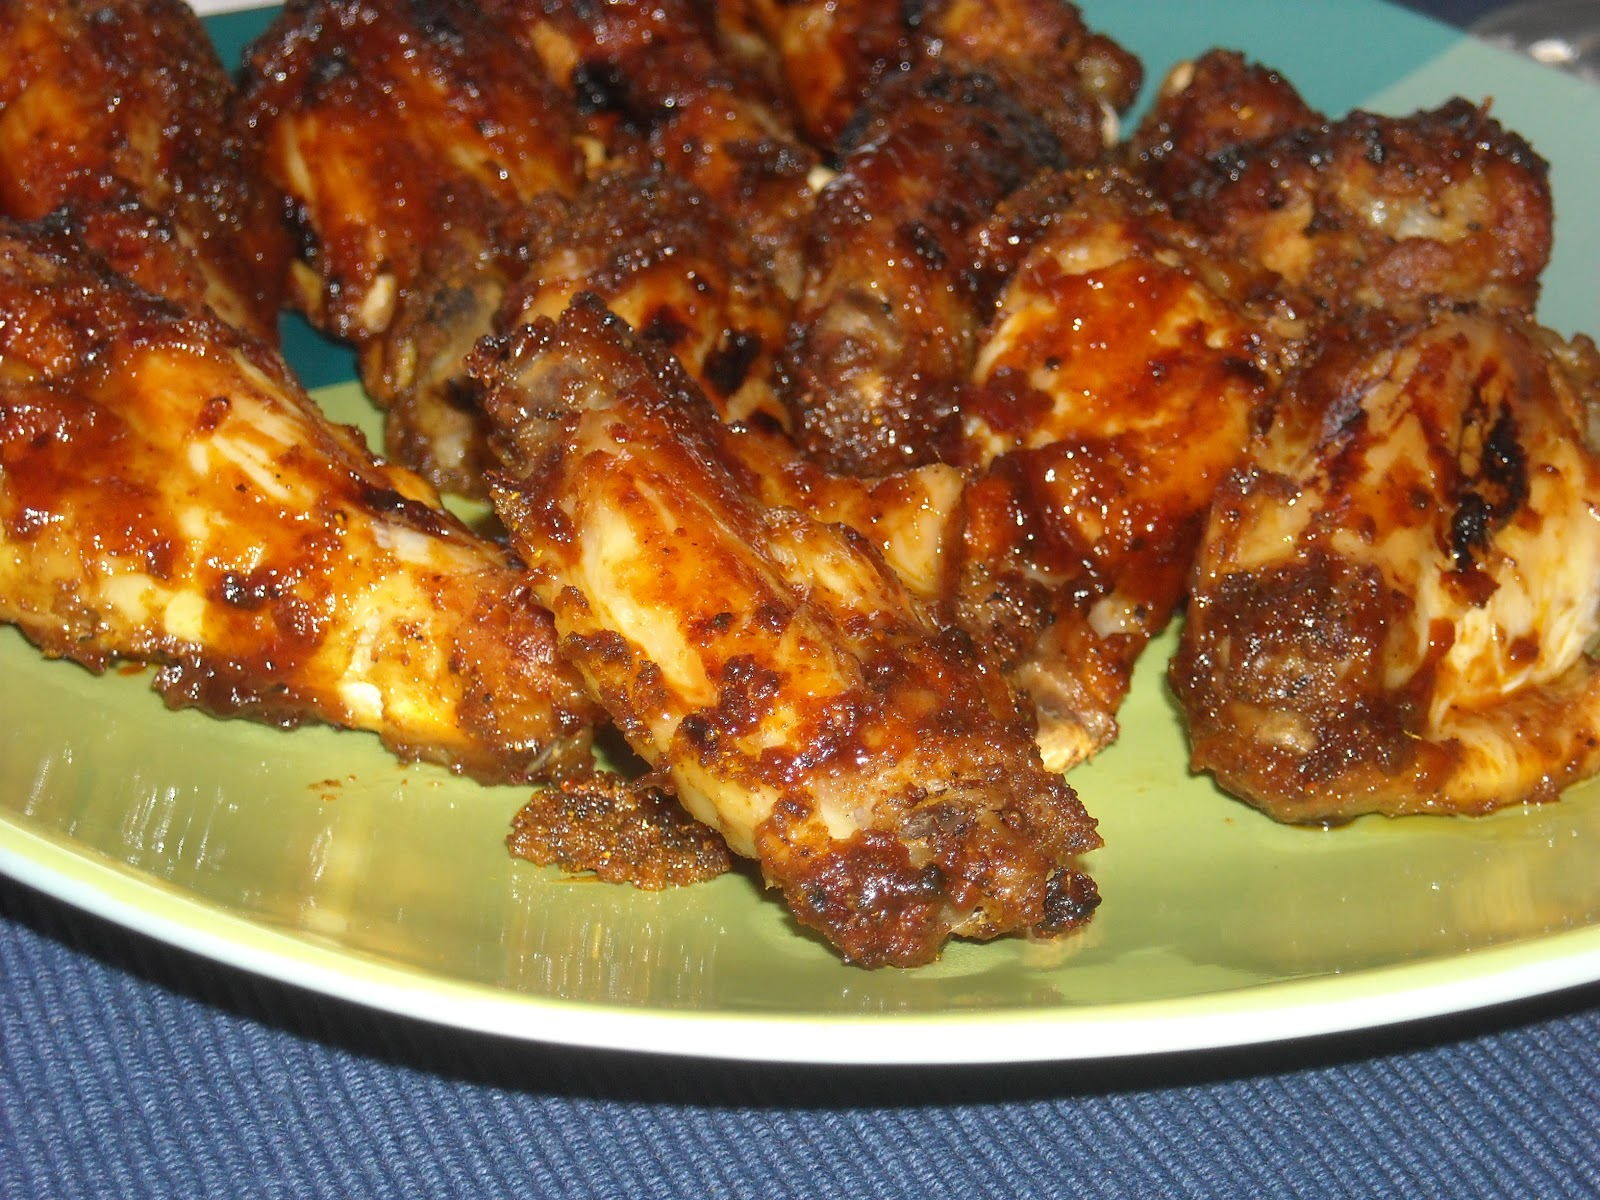 Leave a Happy Plate: Spicy Baked Chicken Wings